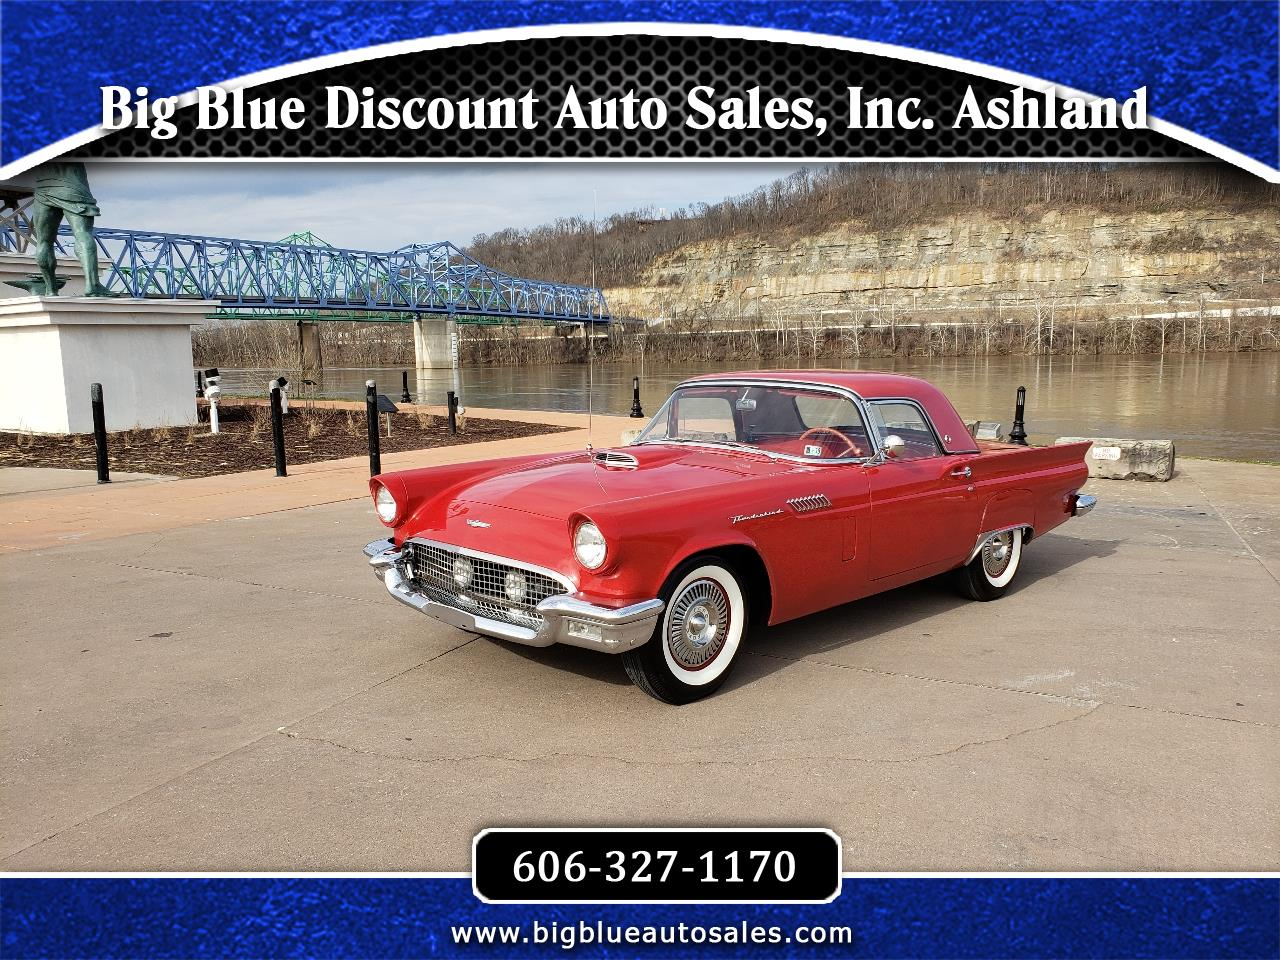 Ford Thunderbird 2dr Conv w/Hardtop Deluxe 1957